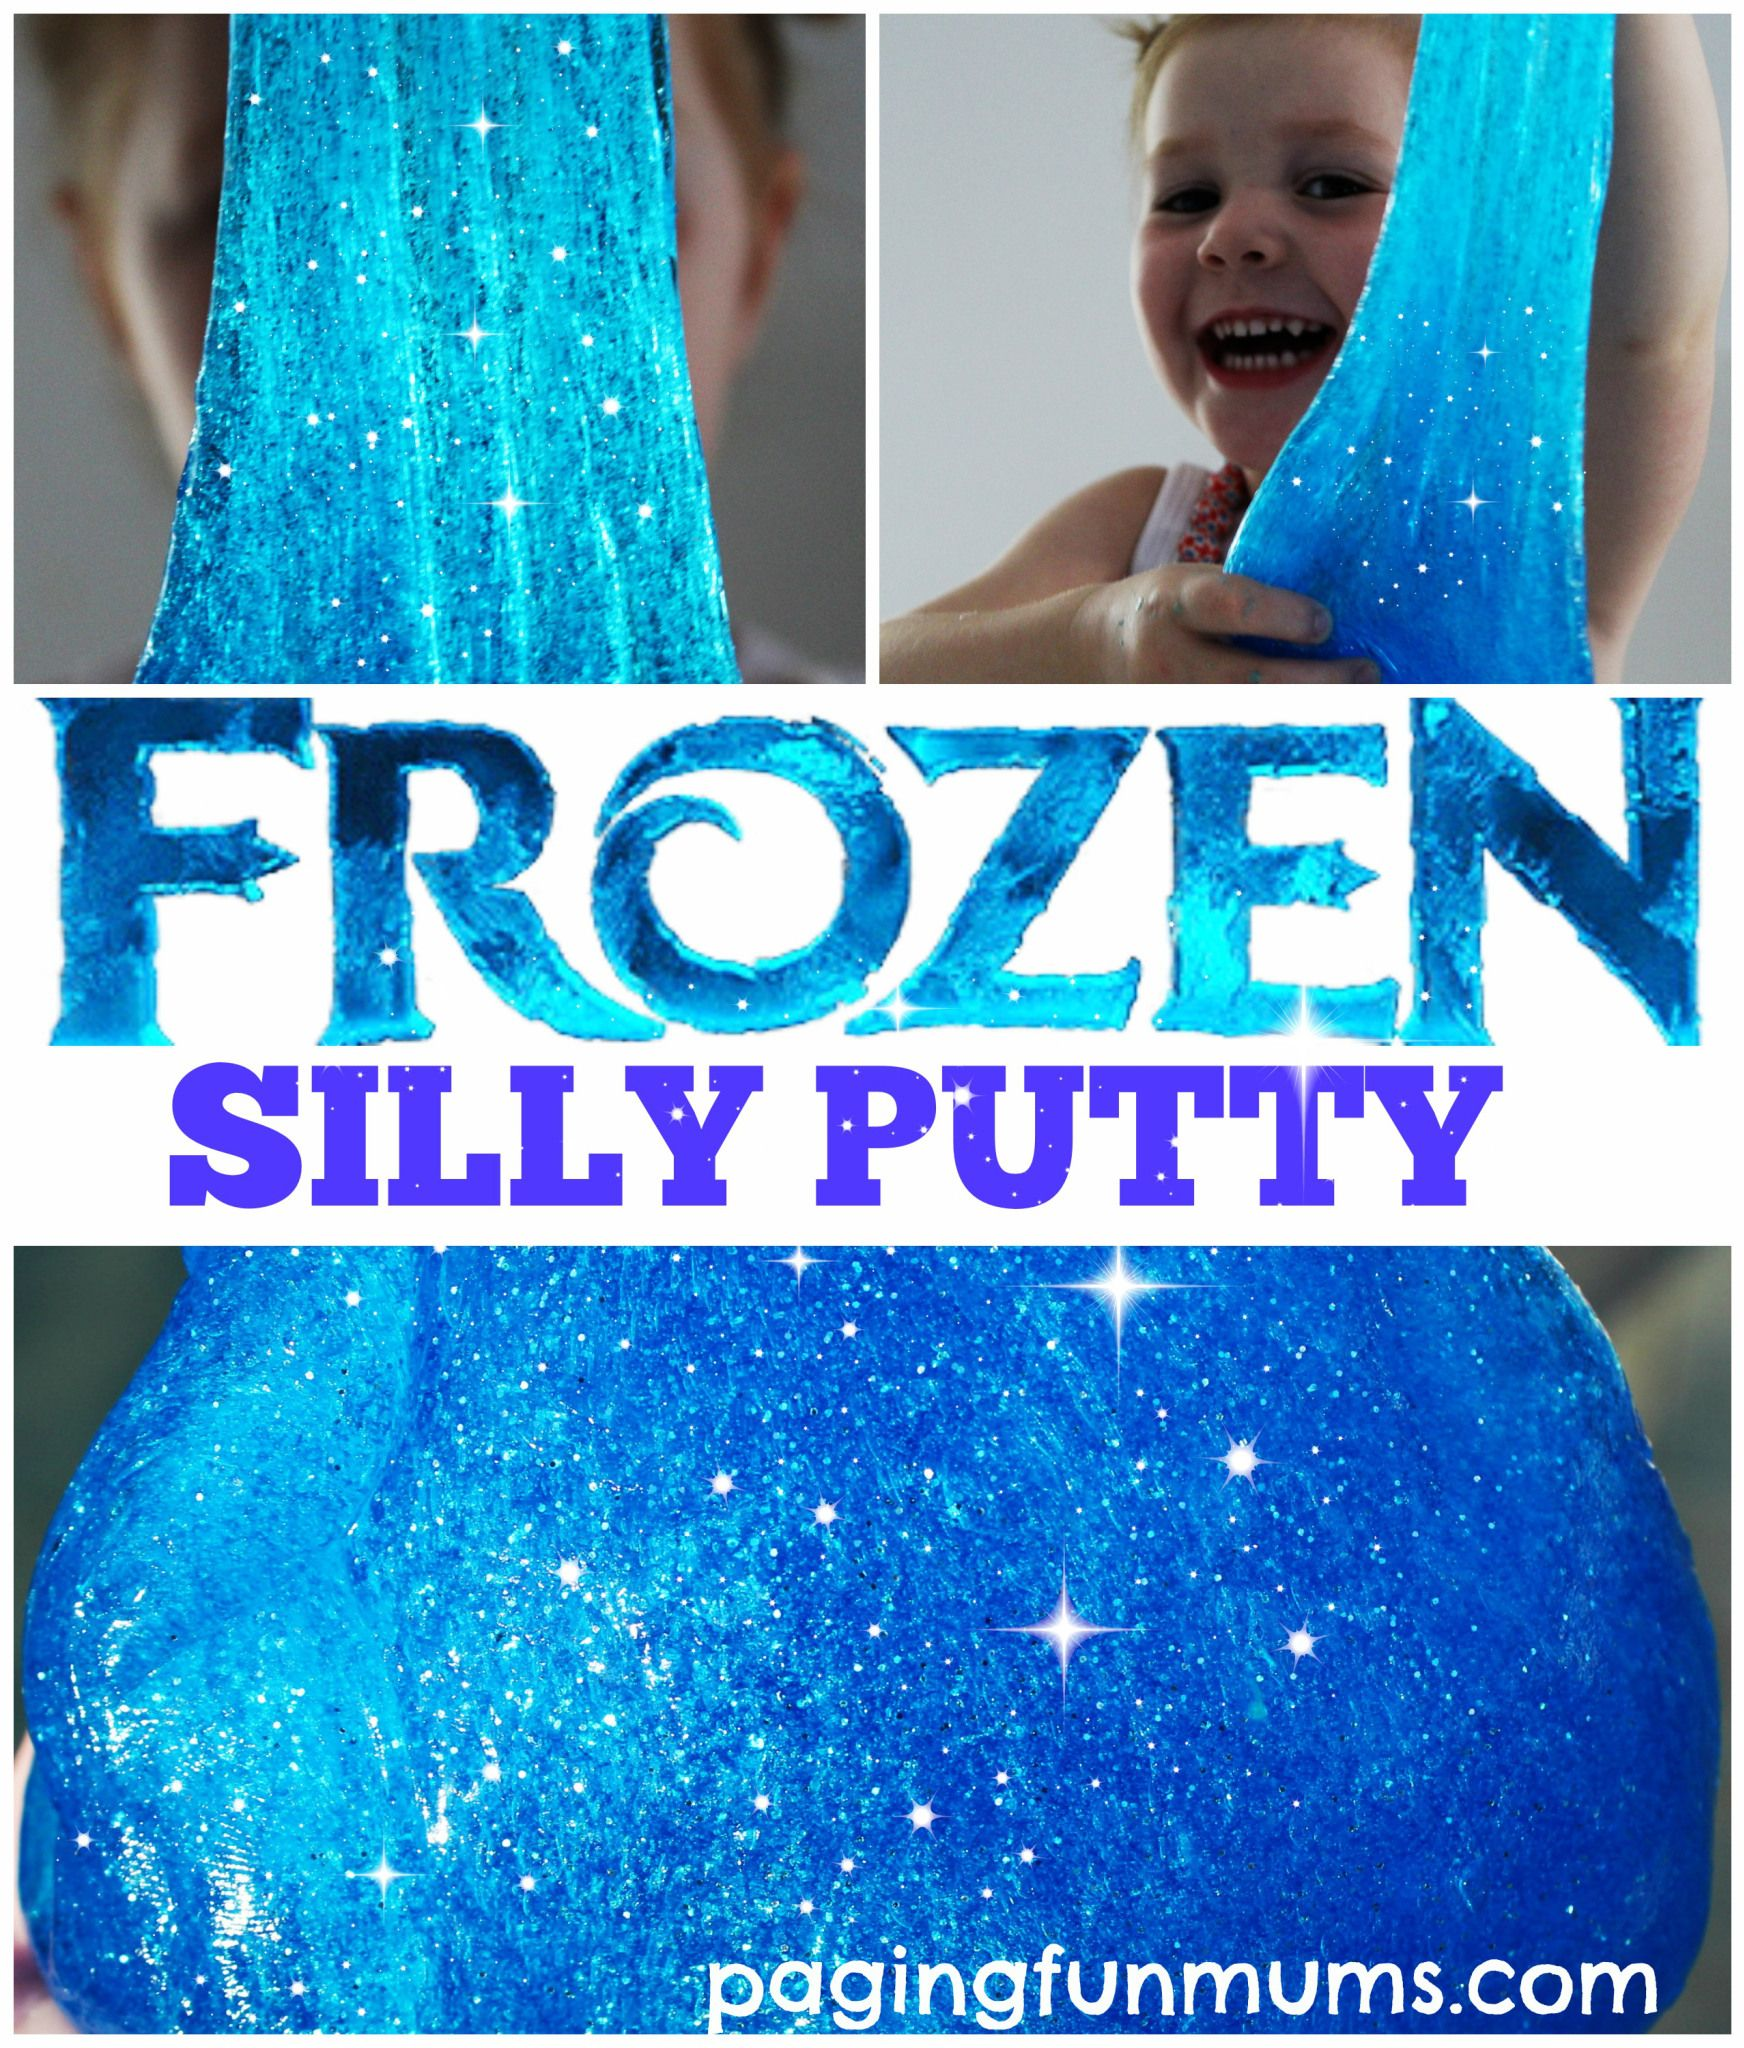 Frozen Silly Putty Top Shot- keep mixing with hands when it doesn't seem to mix properly. It will come together.